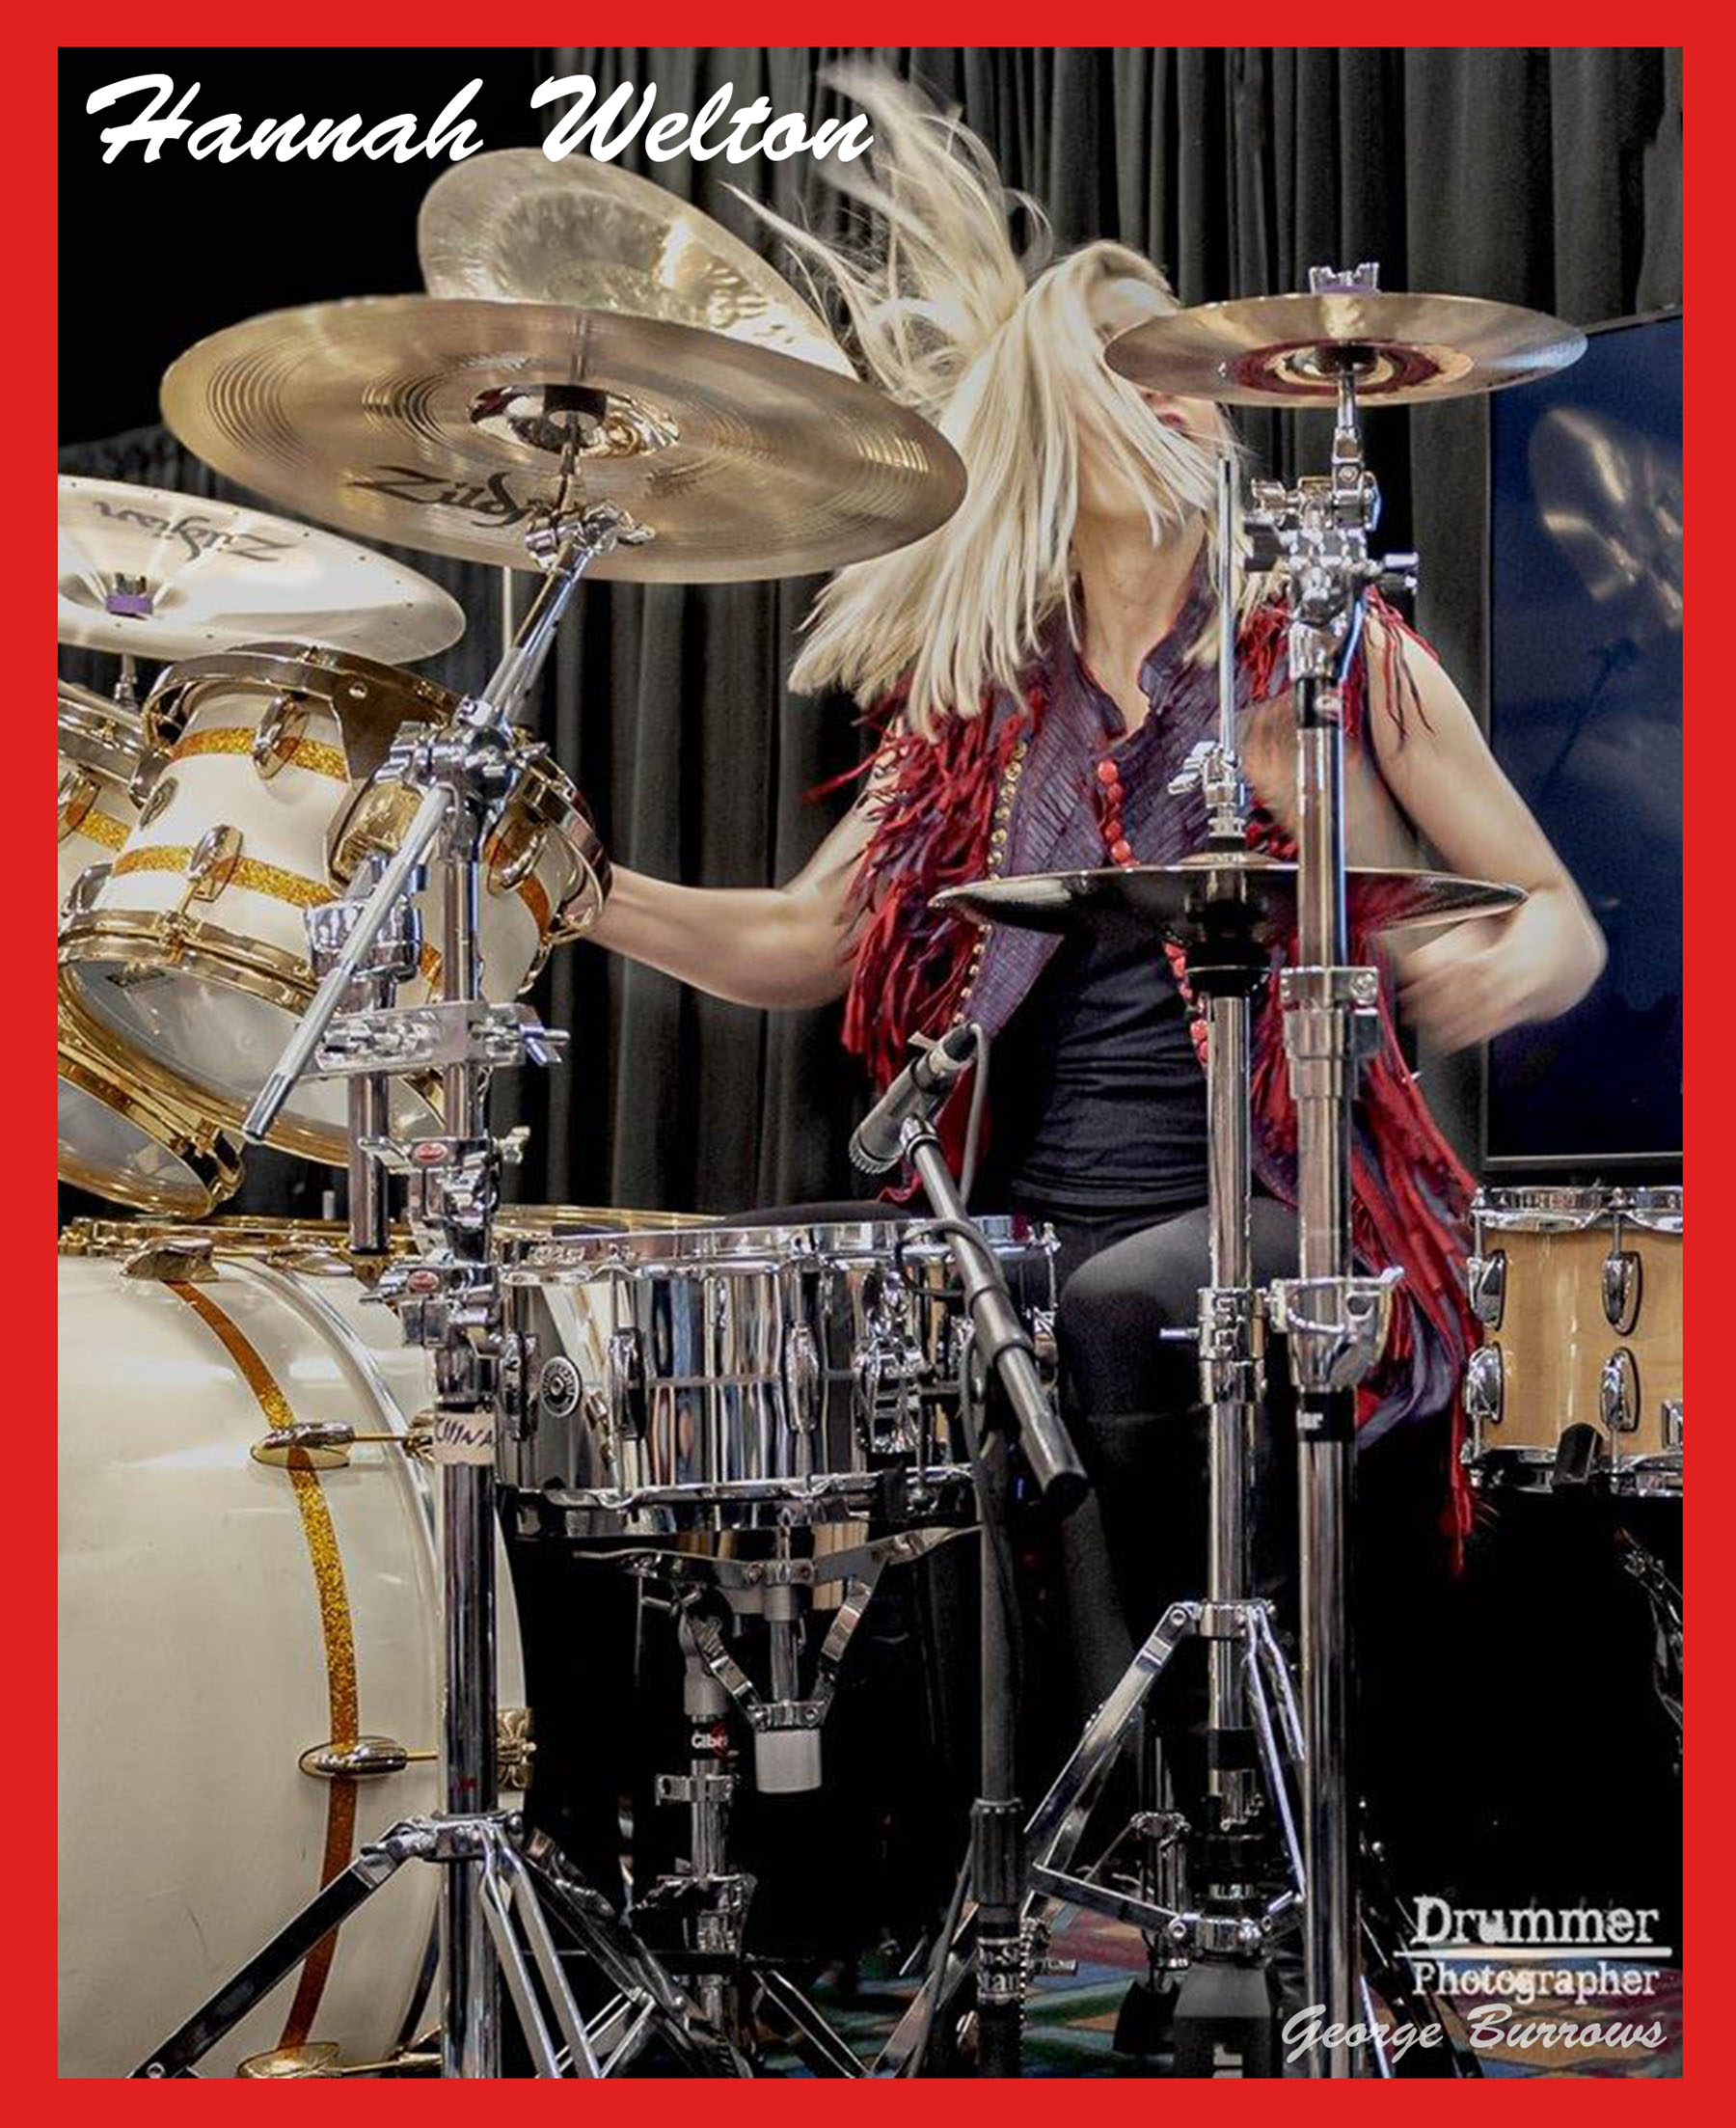 Chicago Drum Show 2020.Review 2019 Chicago Drum Show Not So Modern Drummer